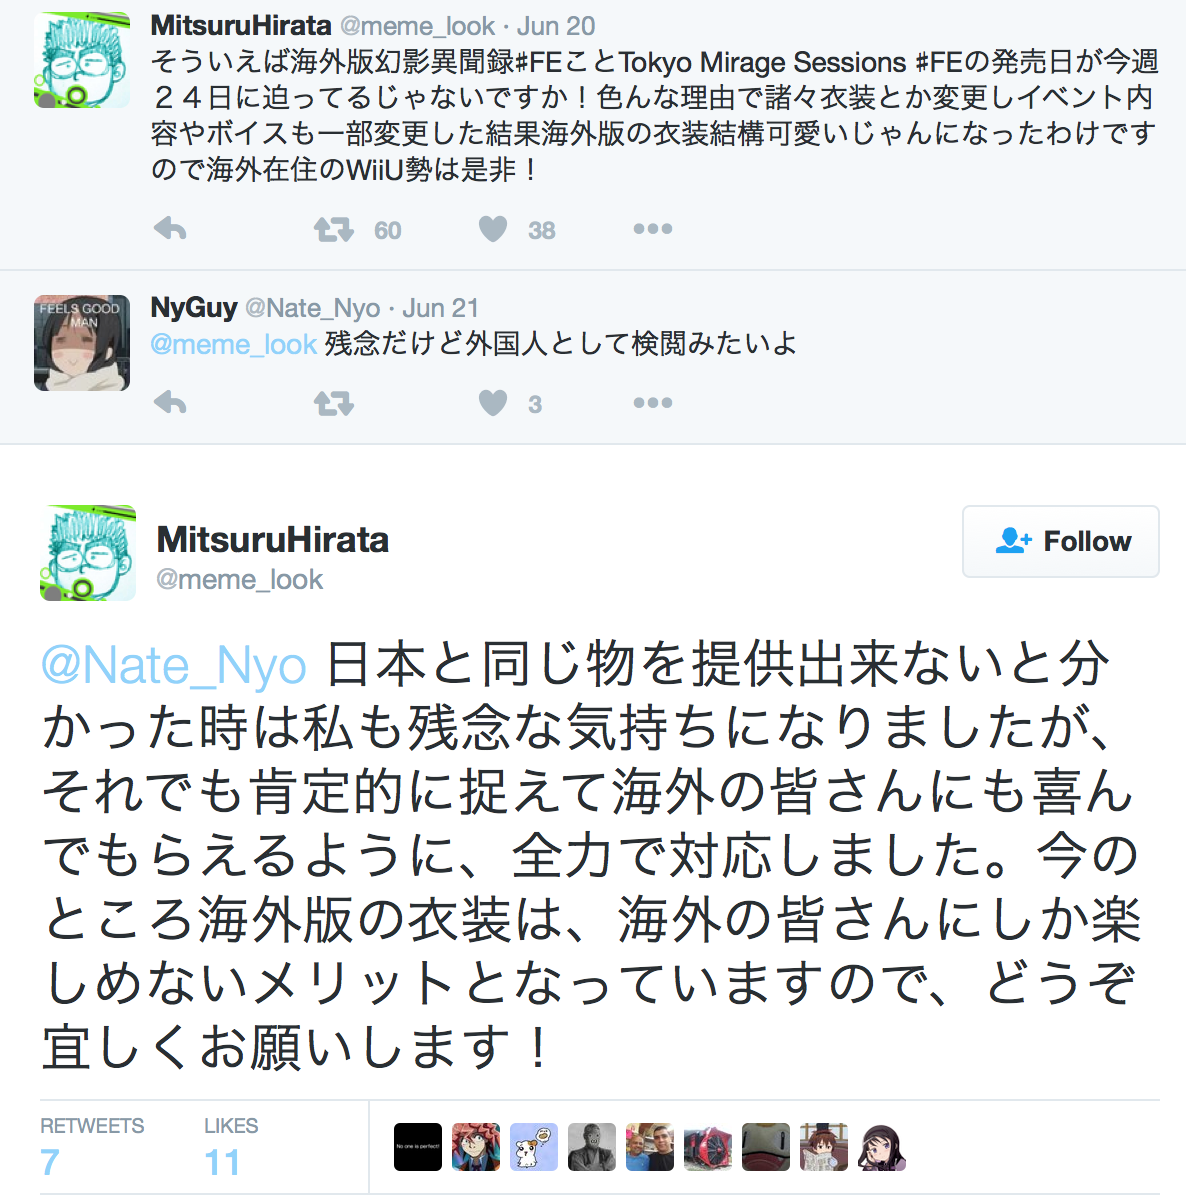 Tokyo_Mirage_Sessions_Censorship_Comments_twitter_Hirata